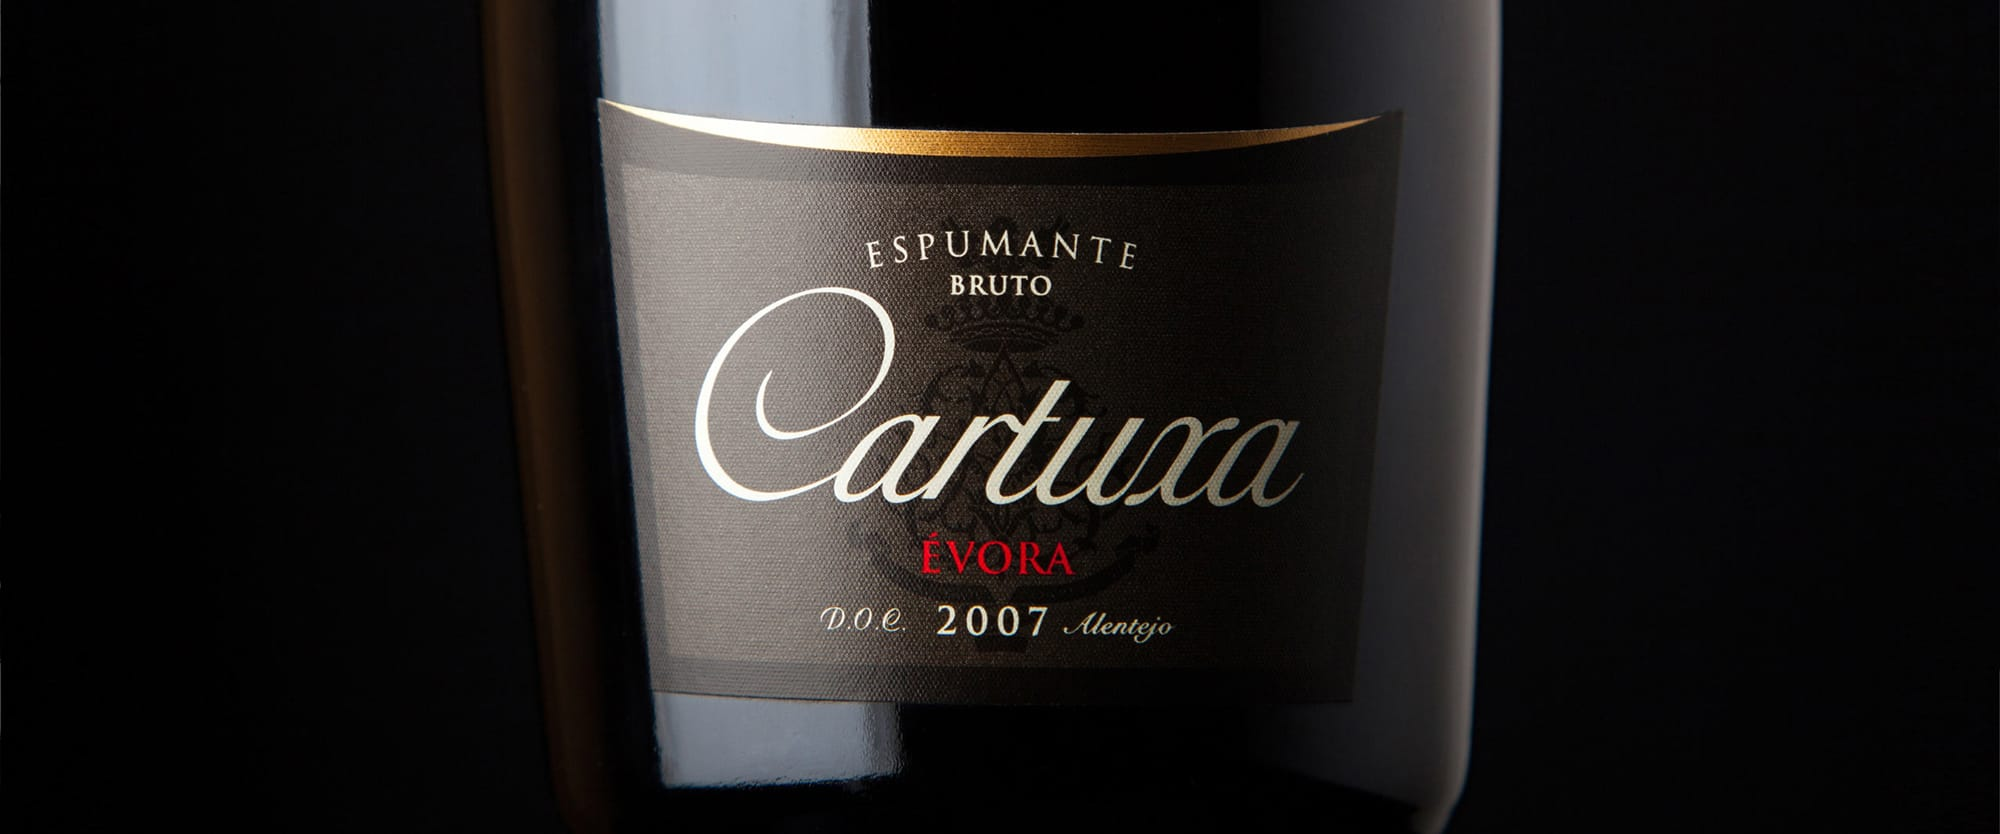 design-rotulo-vinho-espumante-cartuxa-pormenor